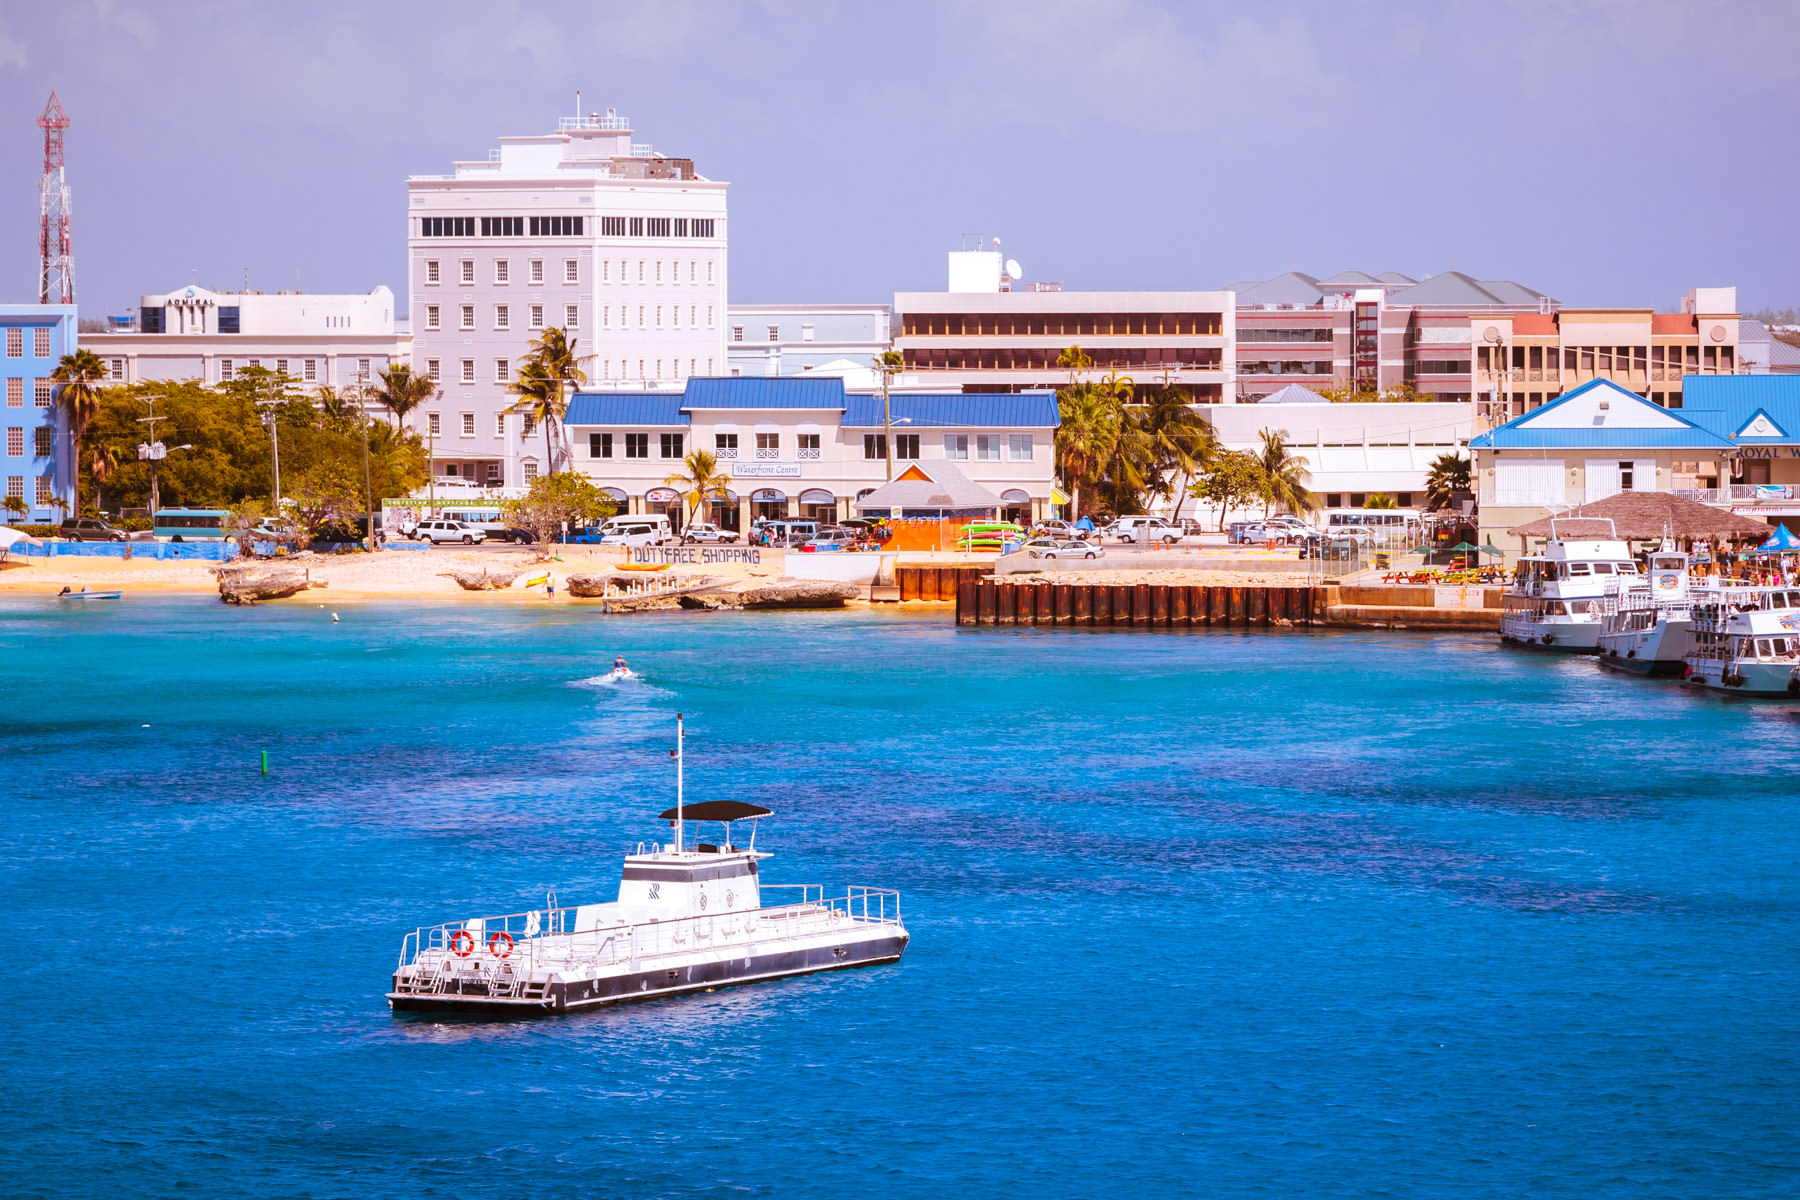 Low-slung buildings rise along the colorful coast of George Town, Grand Cayman.